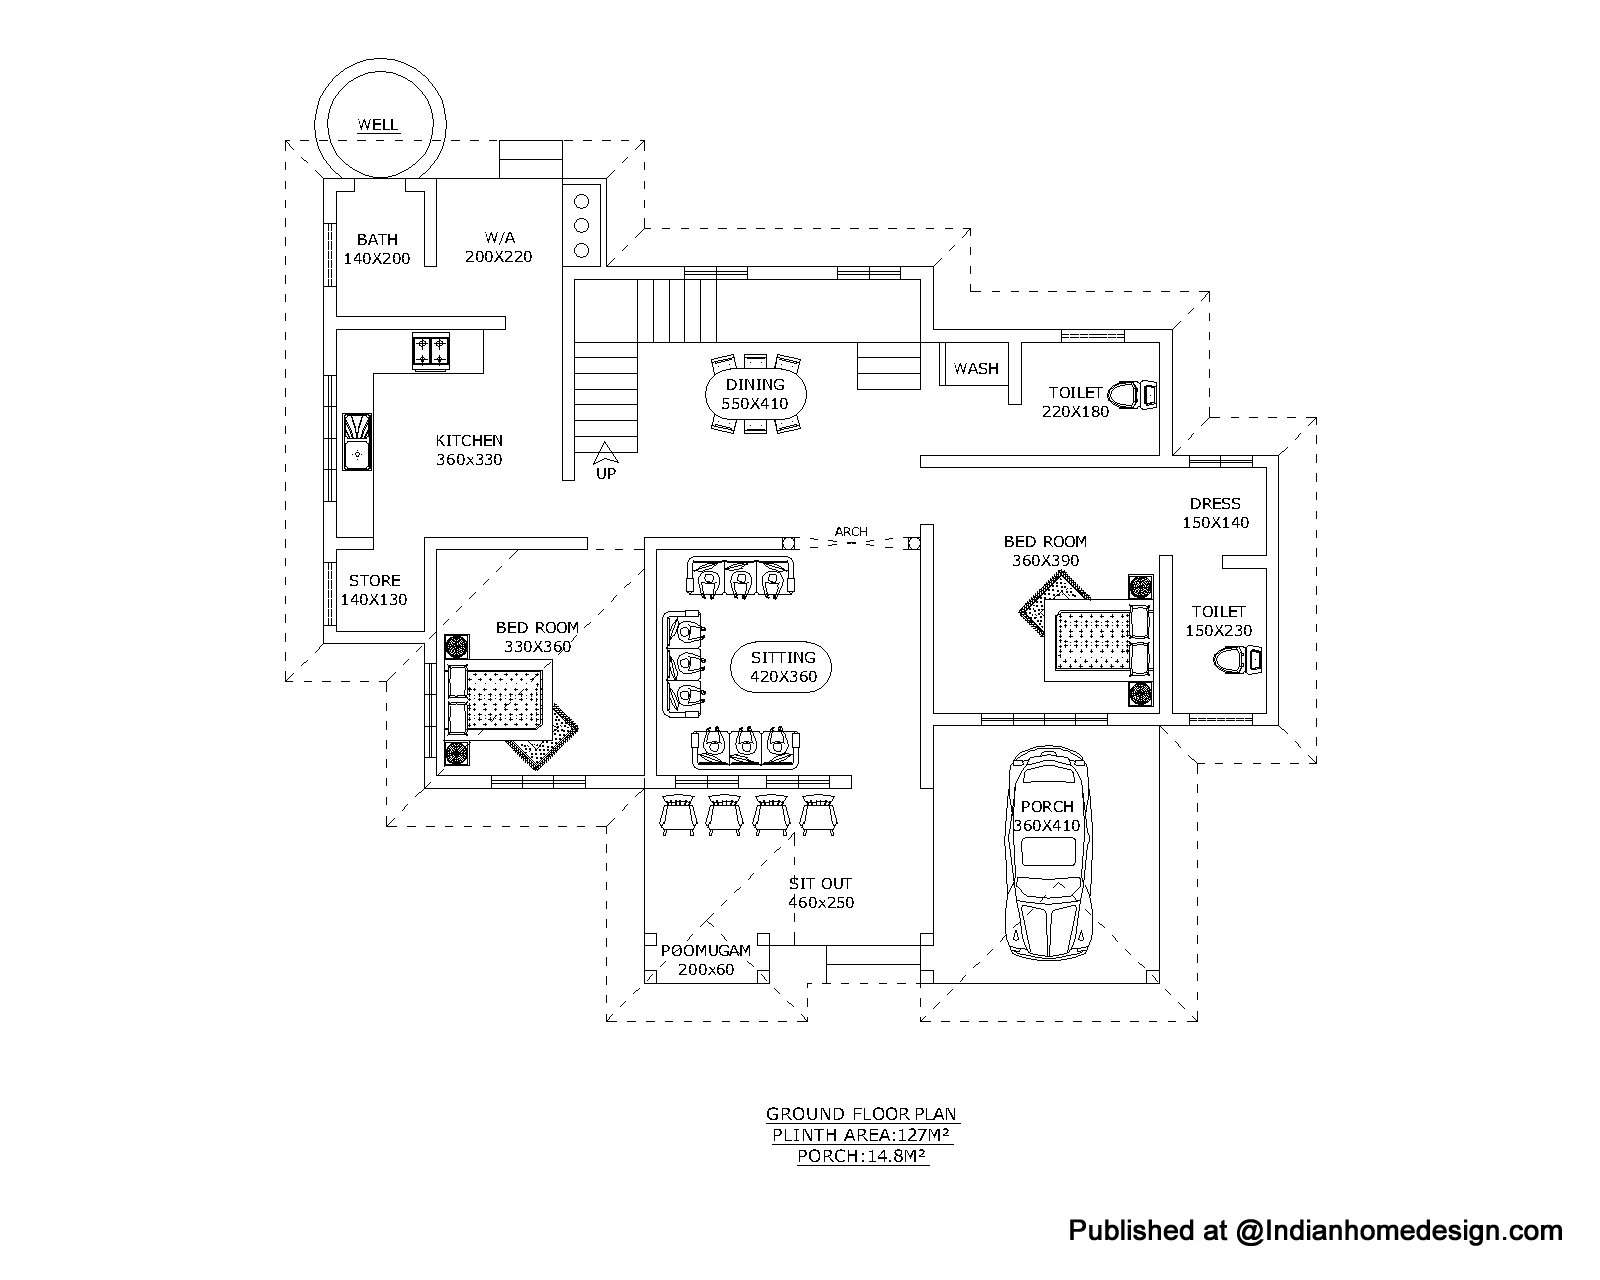 House Plans and Design Home Plans In Kerala Autocad Format